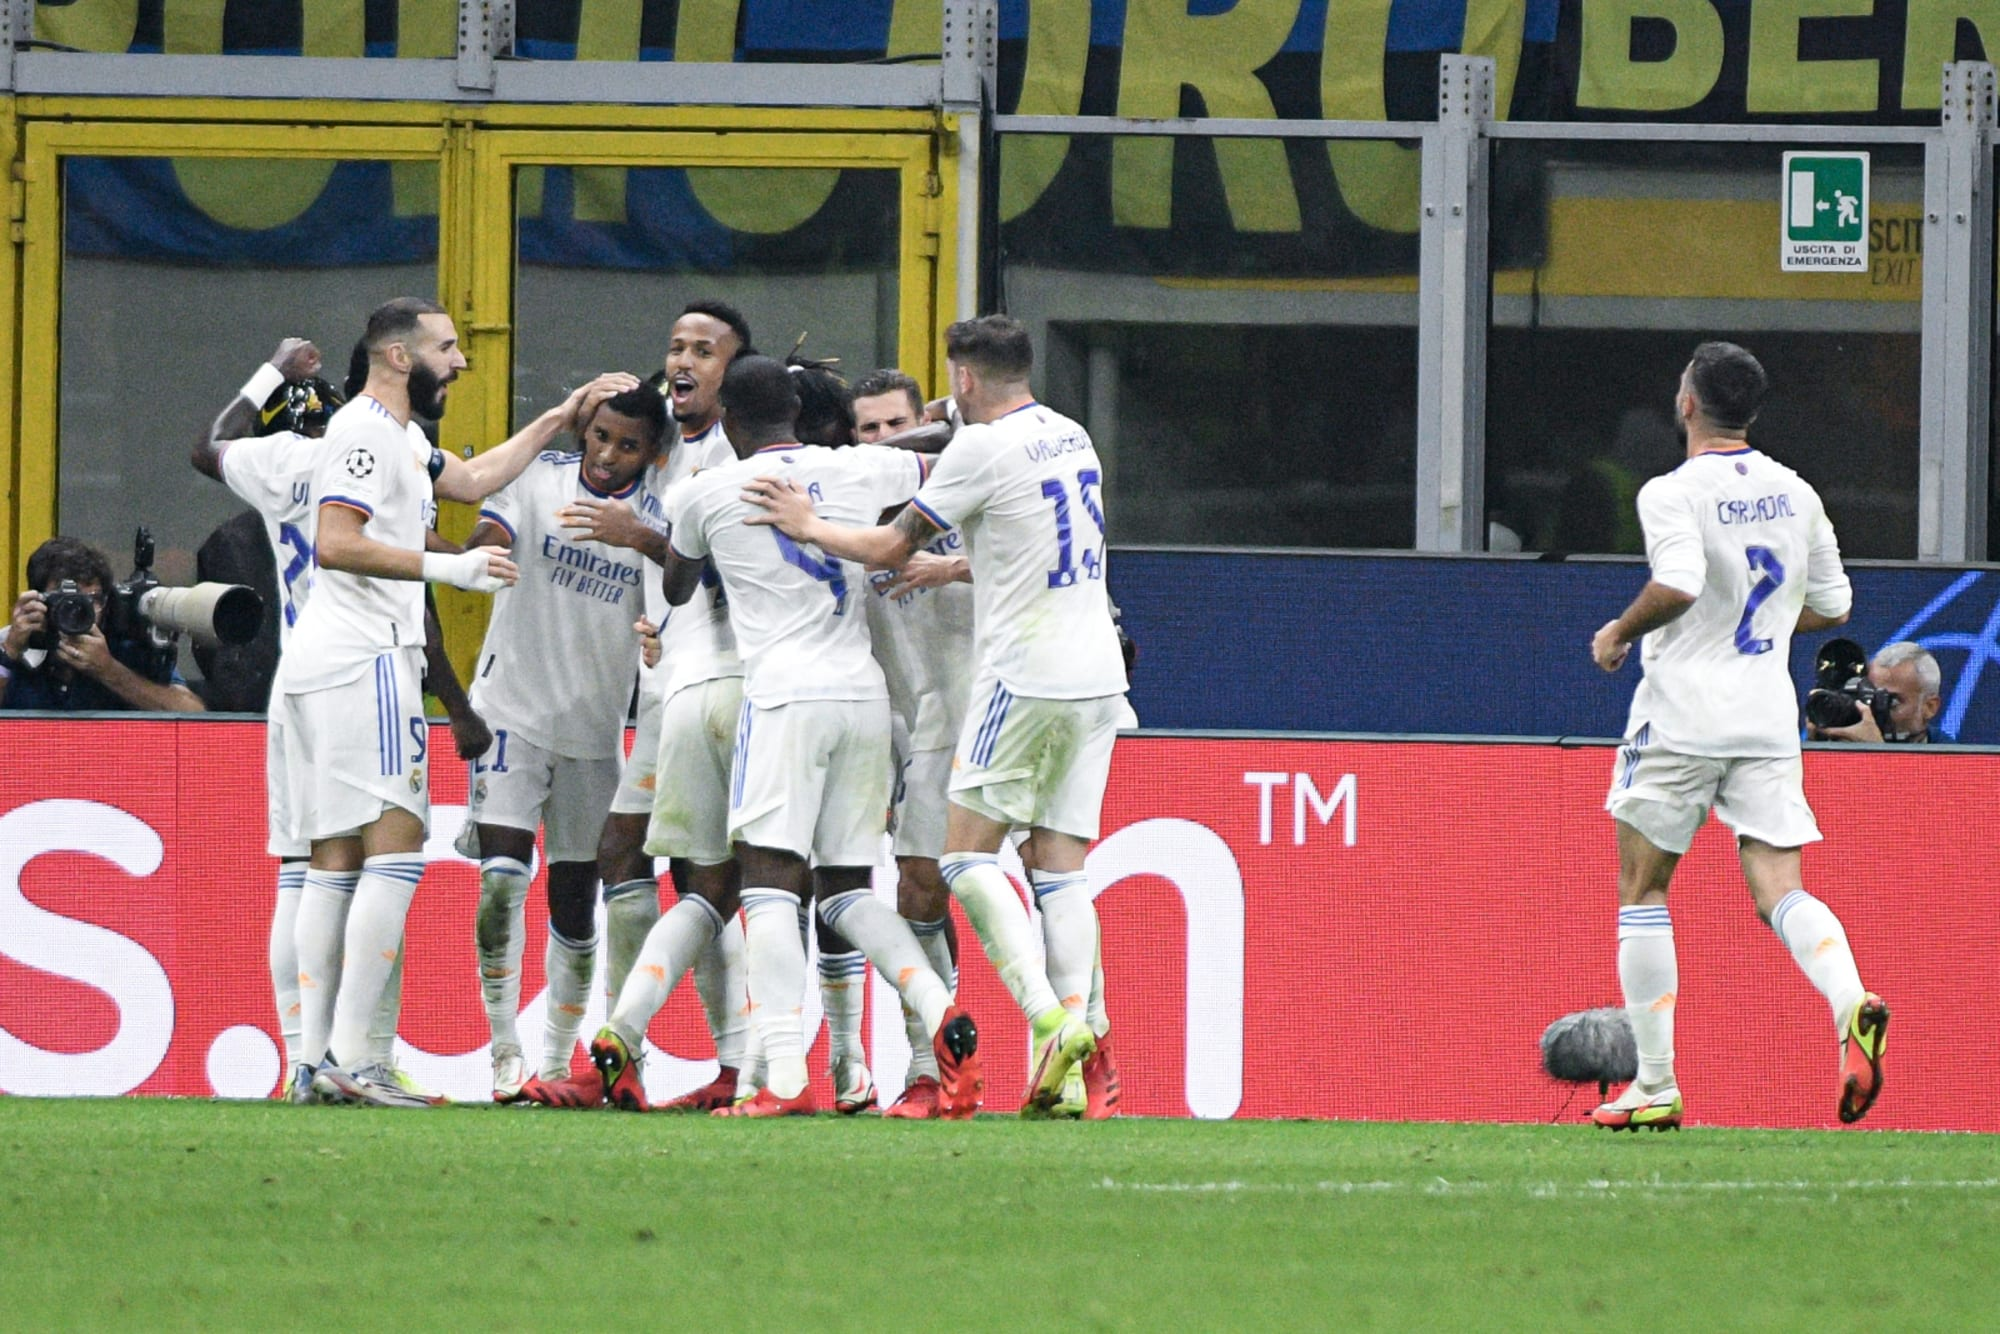 Real Madrid: 3 takeaways from a 1-0 win over Inter